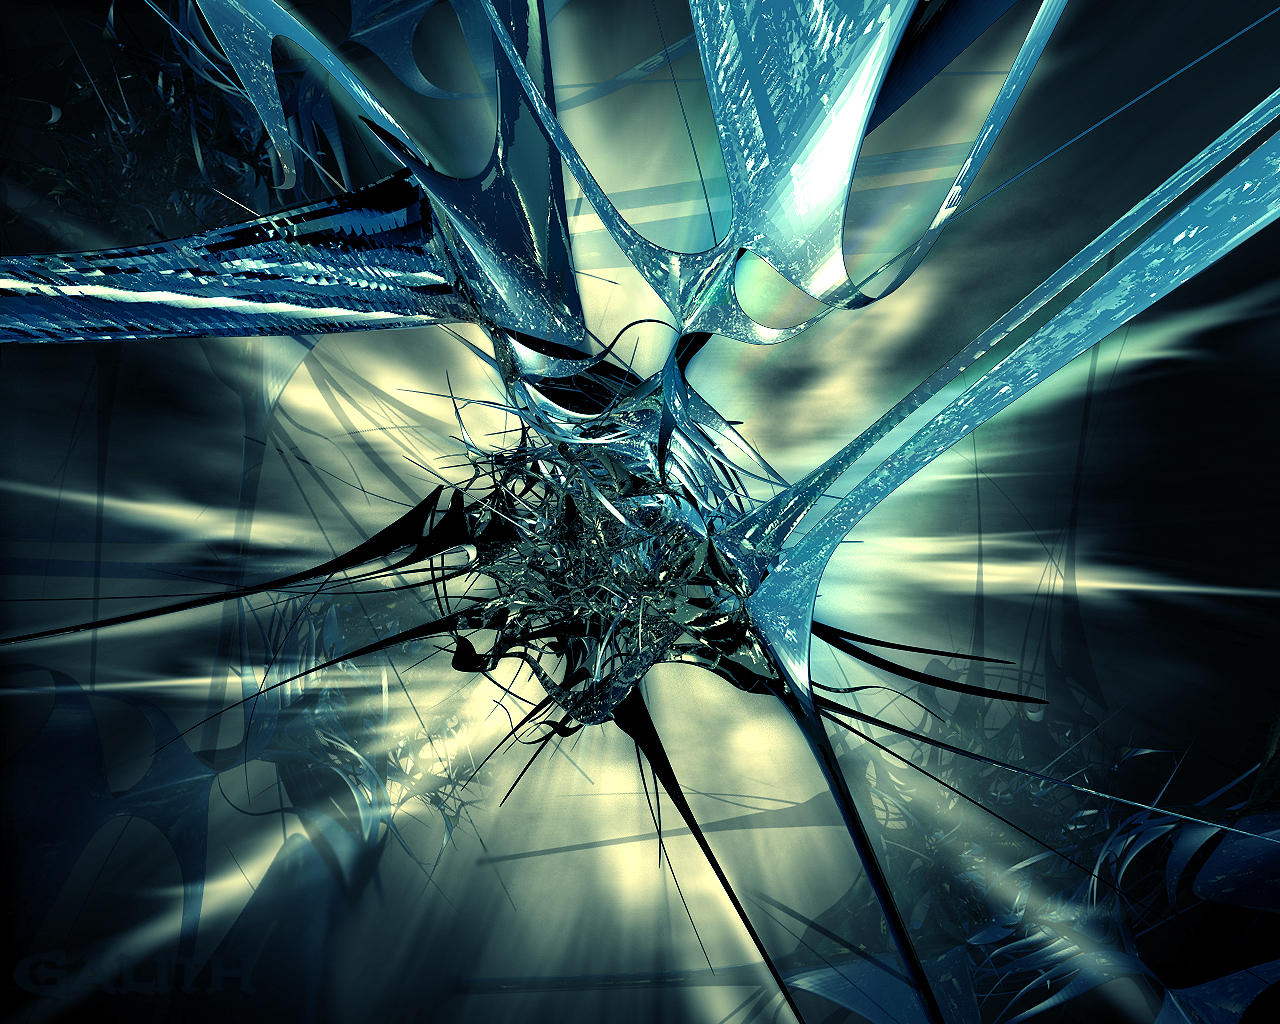 Abstract 3d art by galith on deviantart for 3 dimensional wallpapers 3d